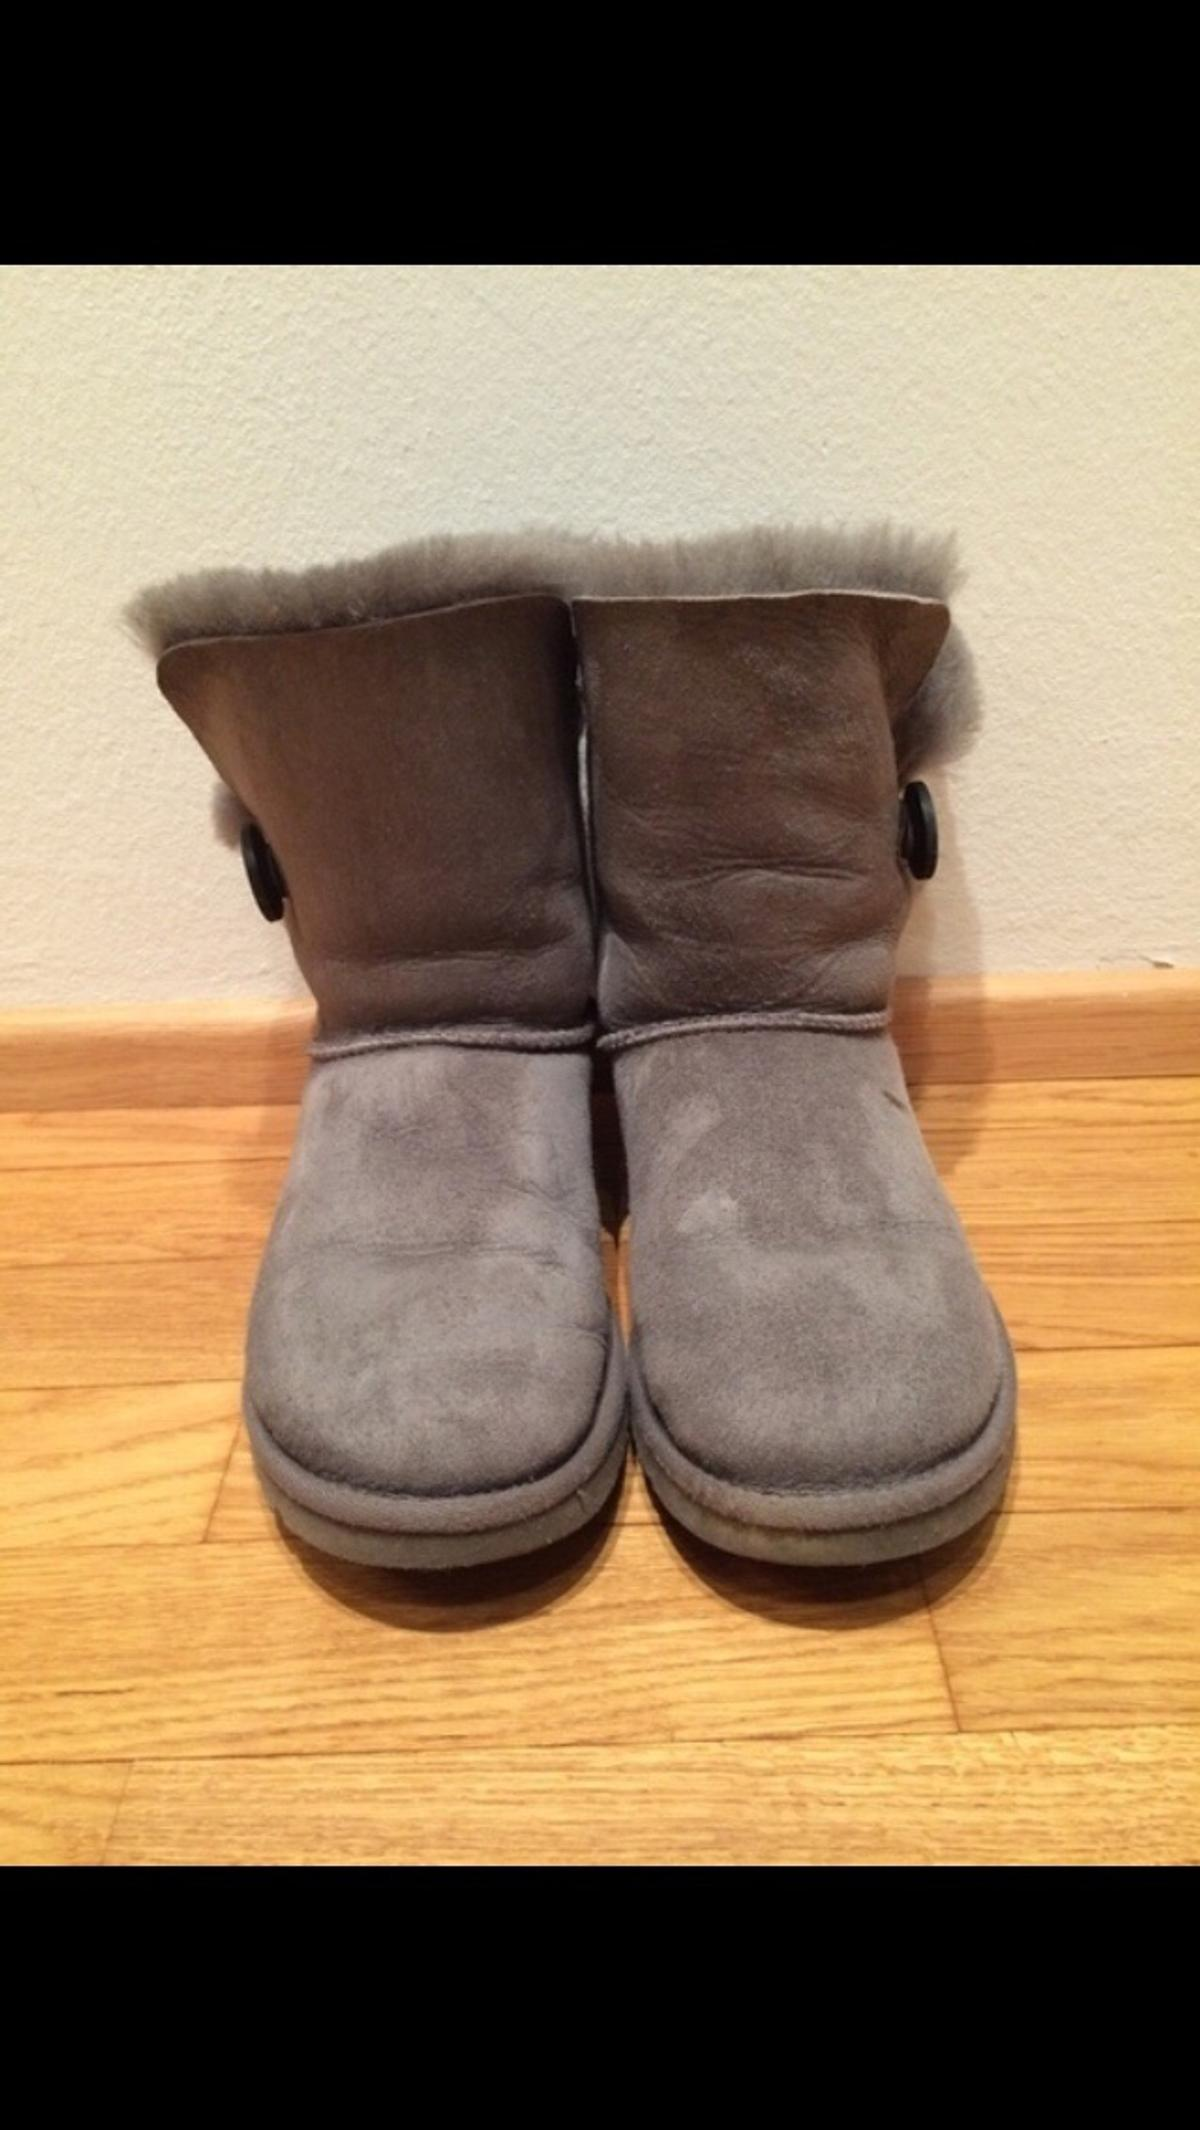 8e8afb2ab7 UGG Boots Bailey Button grau, 36 in 2345 Maria Enzersdorf for €50.00 ...